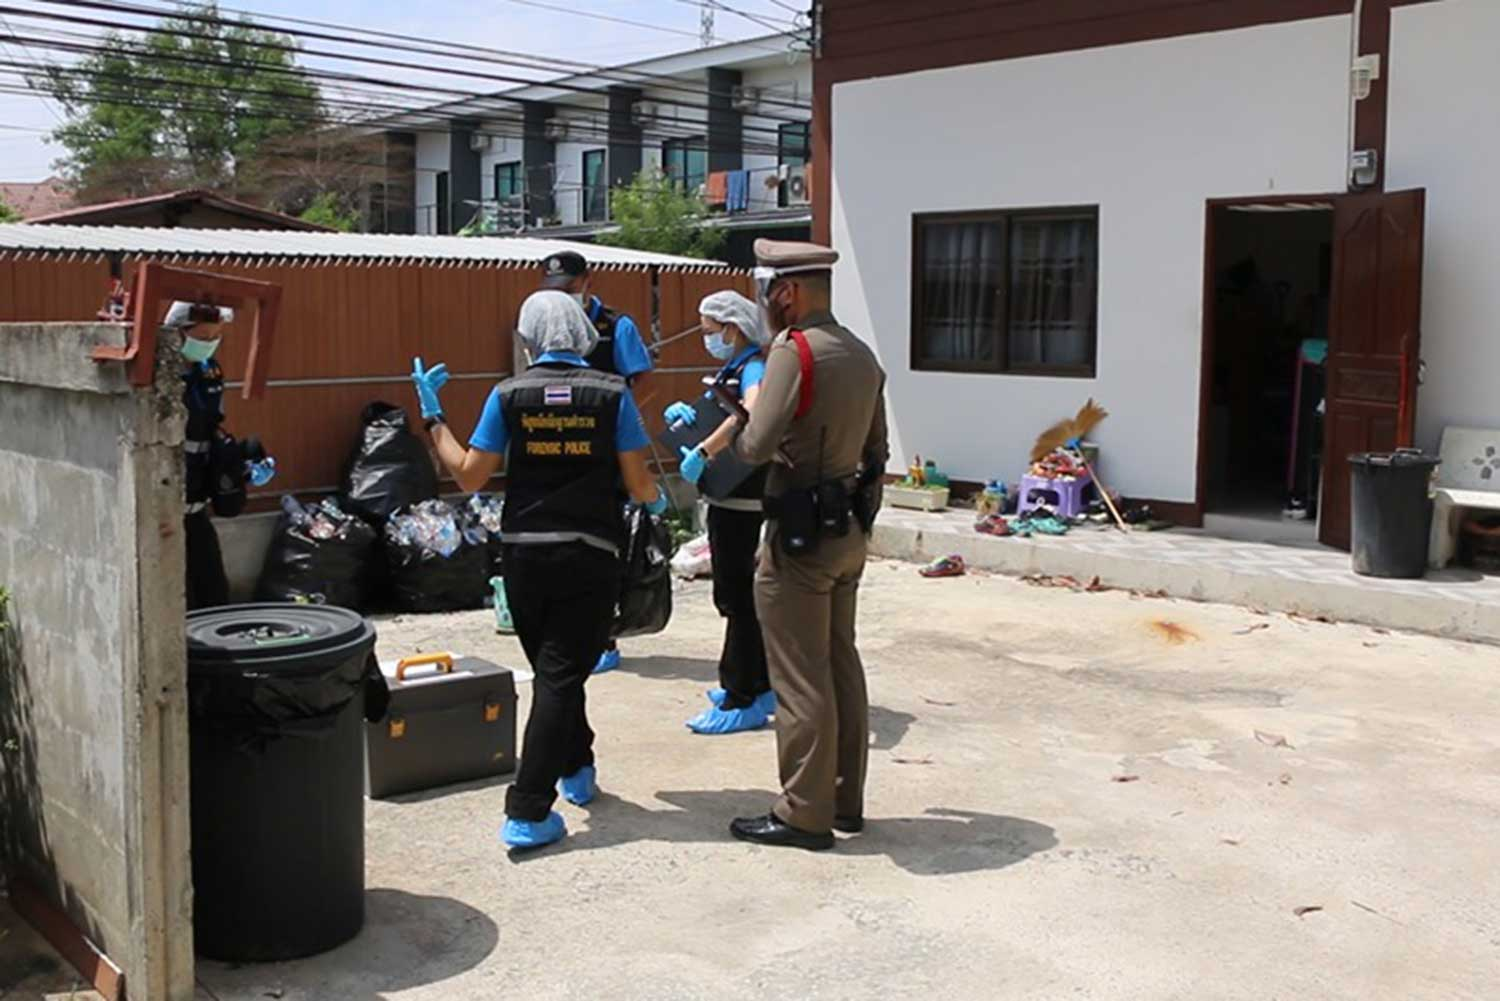 A police officer and forensic investigators in the yard of the rented premises in Khon Kaen where a young man was found stabbed to death on May 28. (File photo by Chakkraphan Natanri)